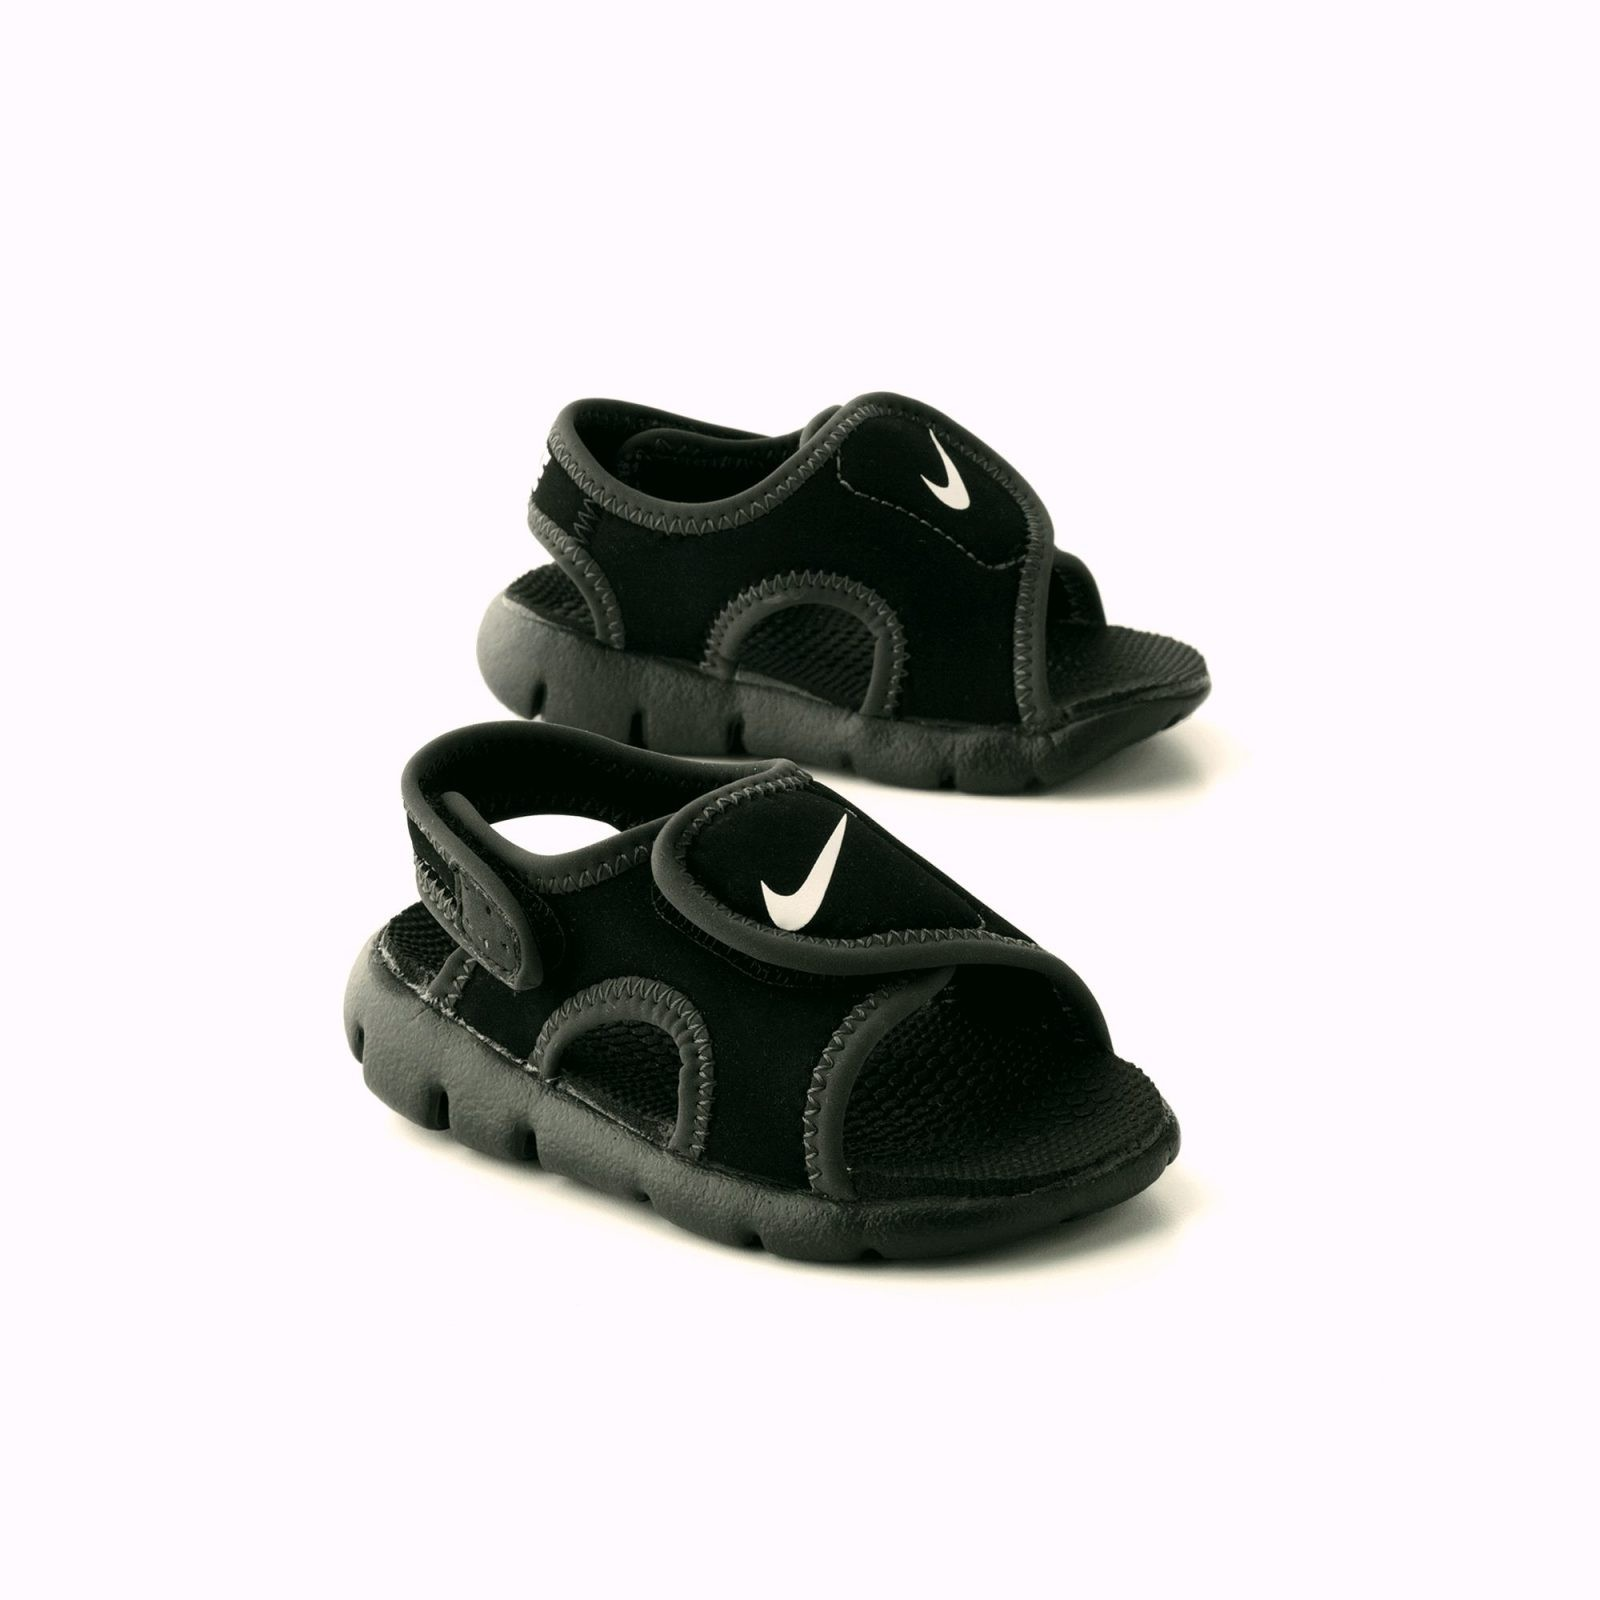 best shoes for child with wide feet